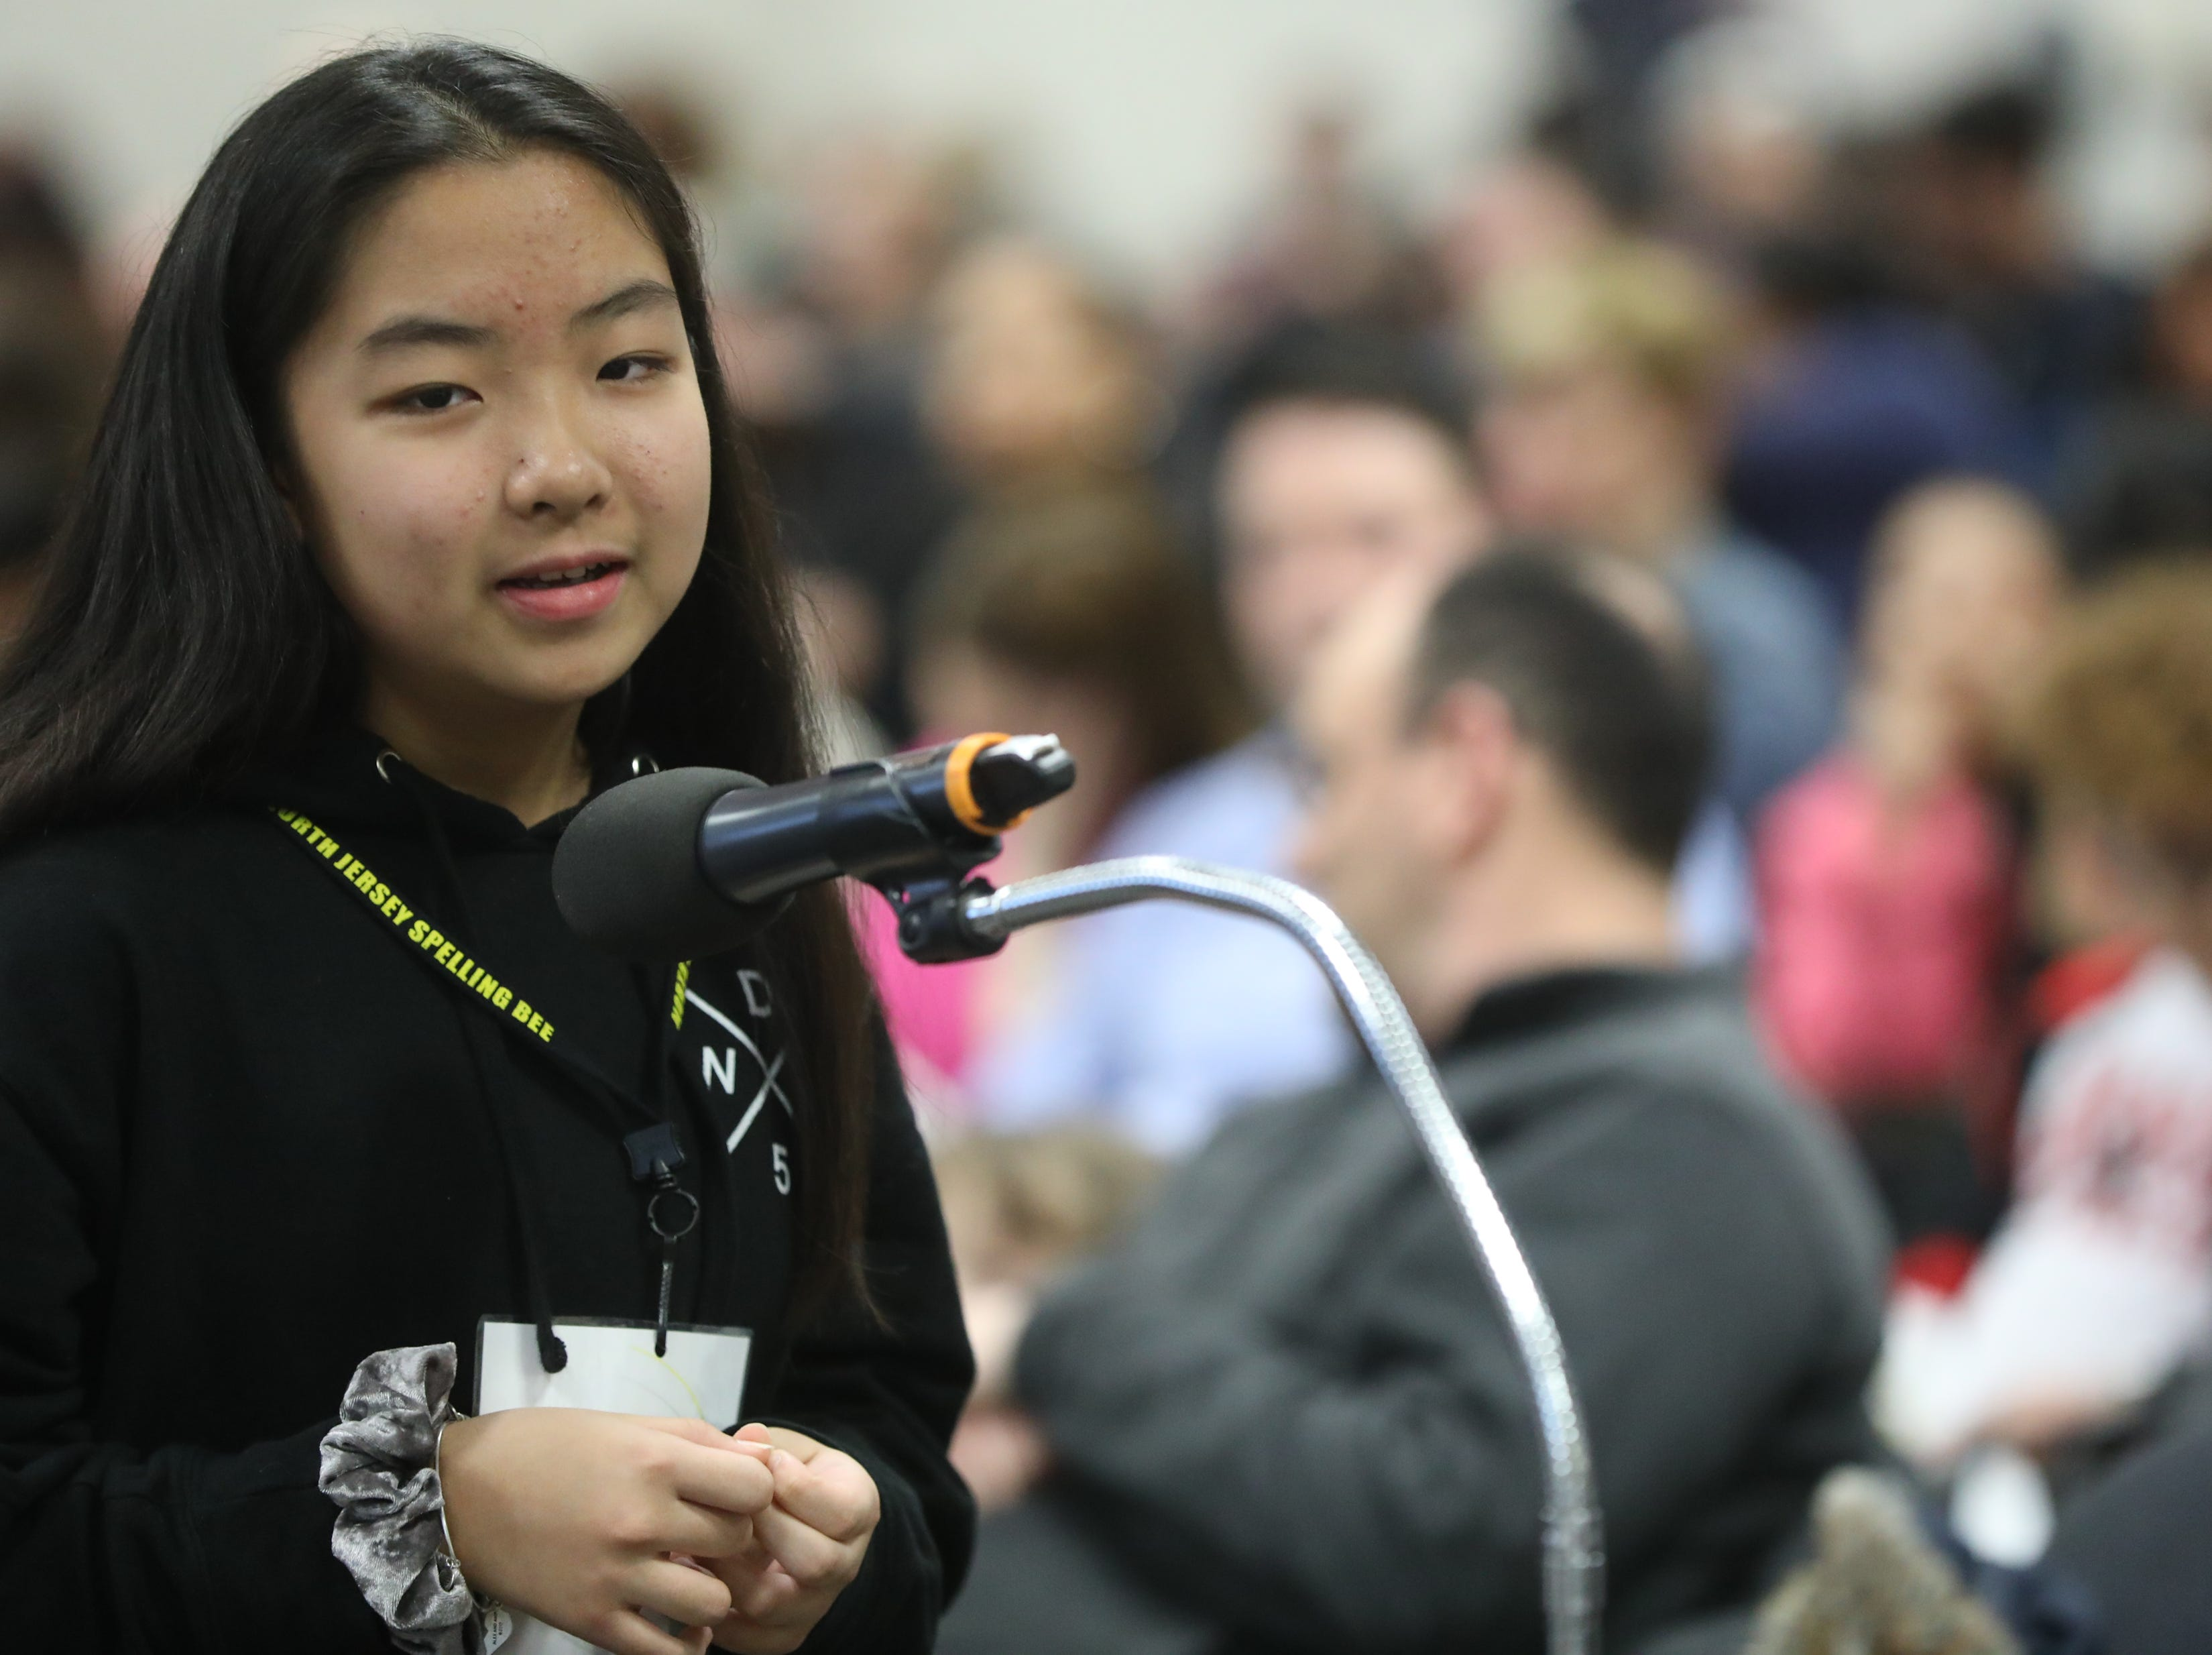 Emma Iwabuchi, of Emerson, competes in the first round of the 2019 North Jersey Spelling Bee, in Paramus. Thursday, March 14, 2019